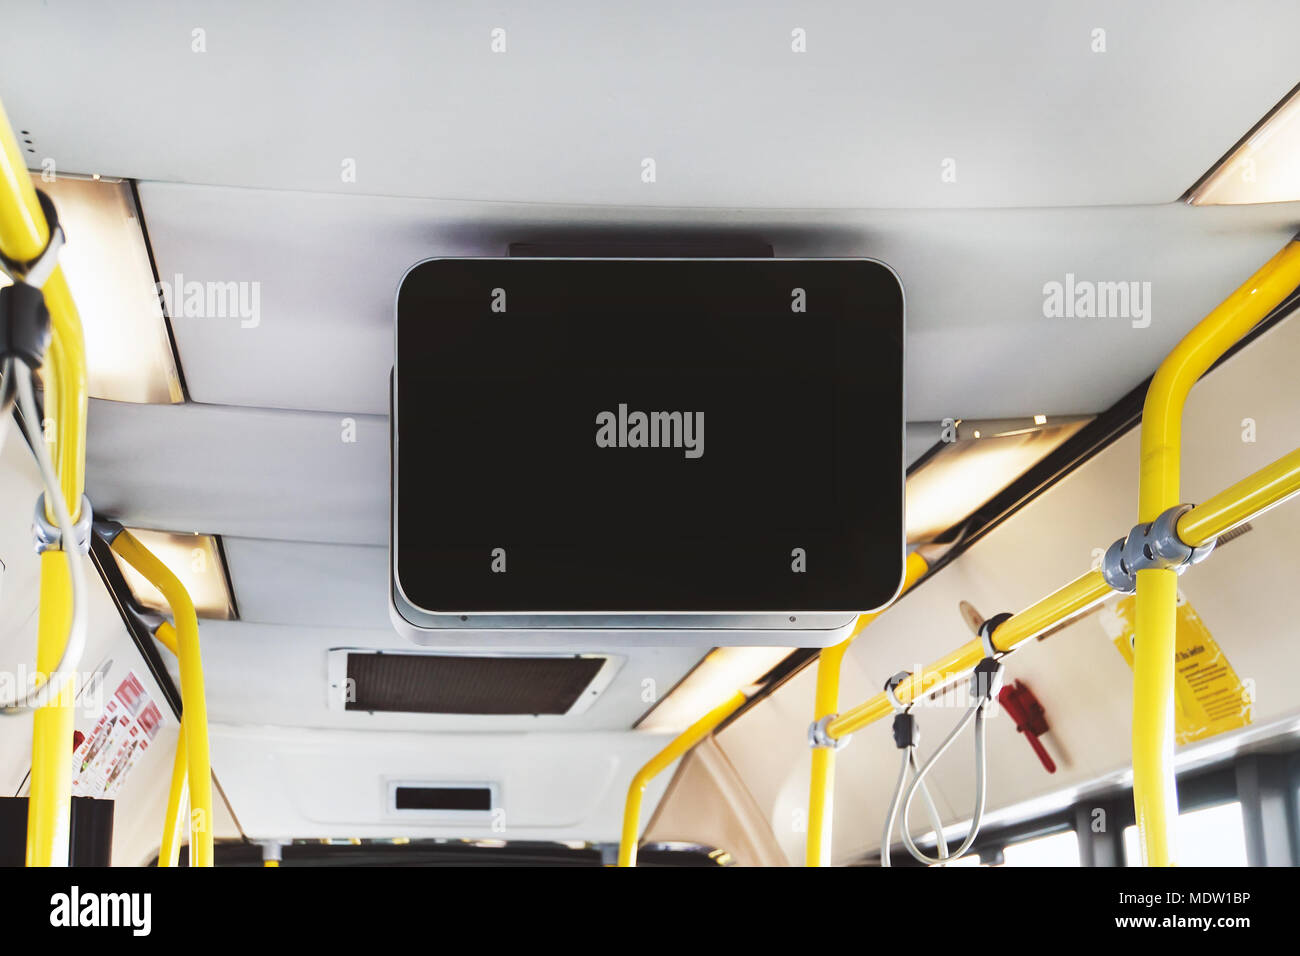 Blank Billboard in Public Subway. black TV without information inside the bus. Video advertising in public transport. Mock up electronic media board w Stock Photo